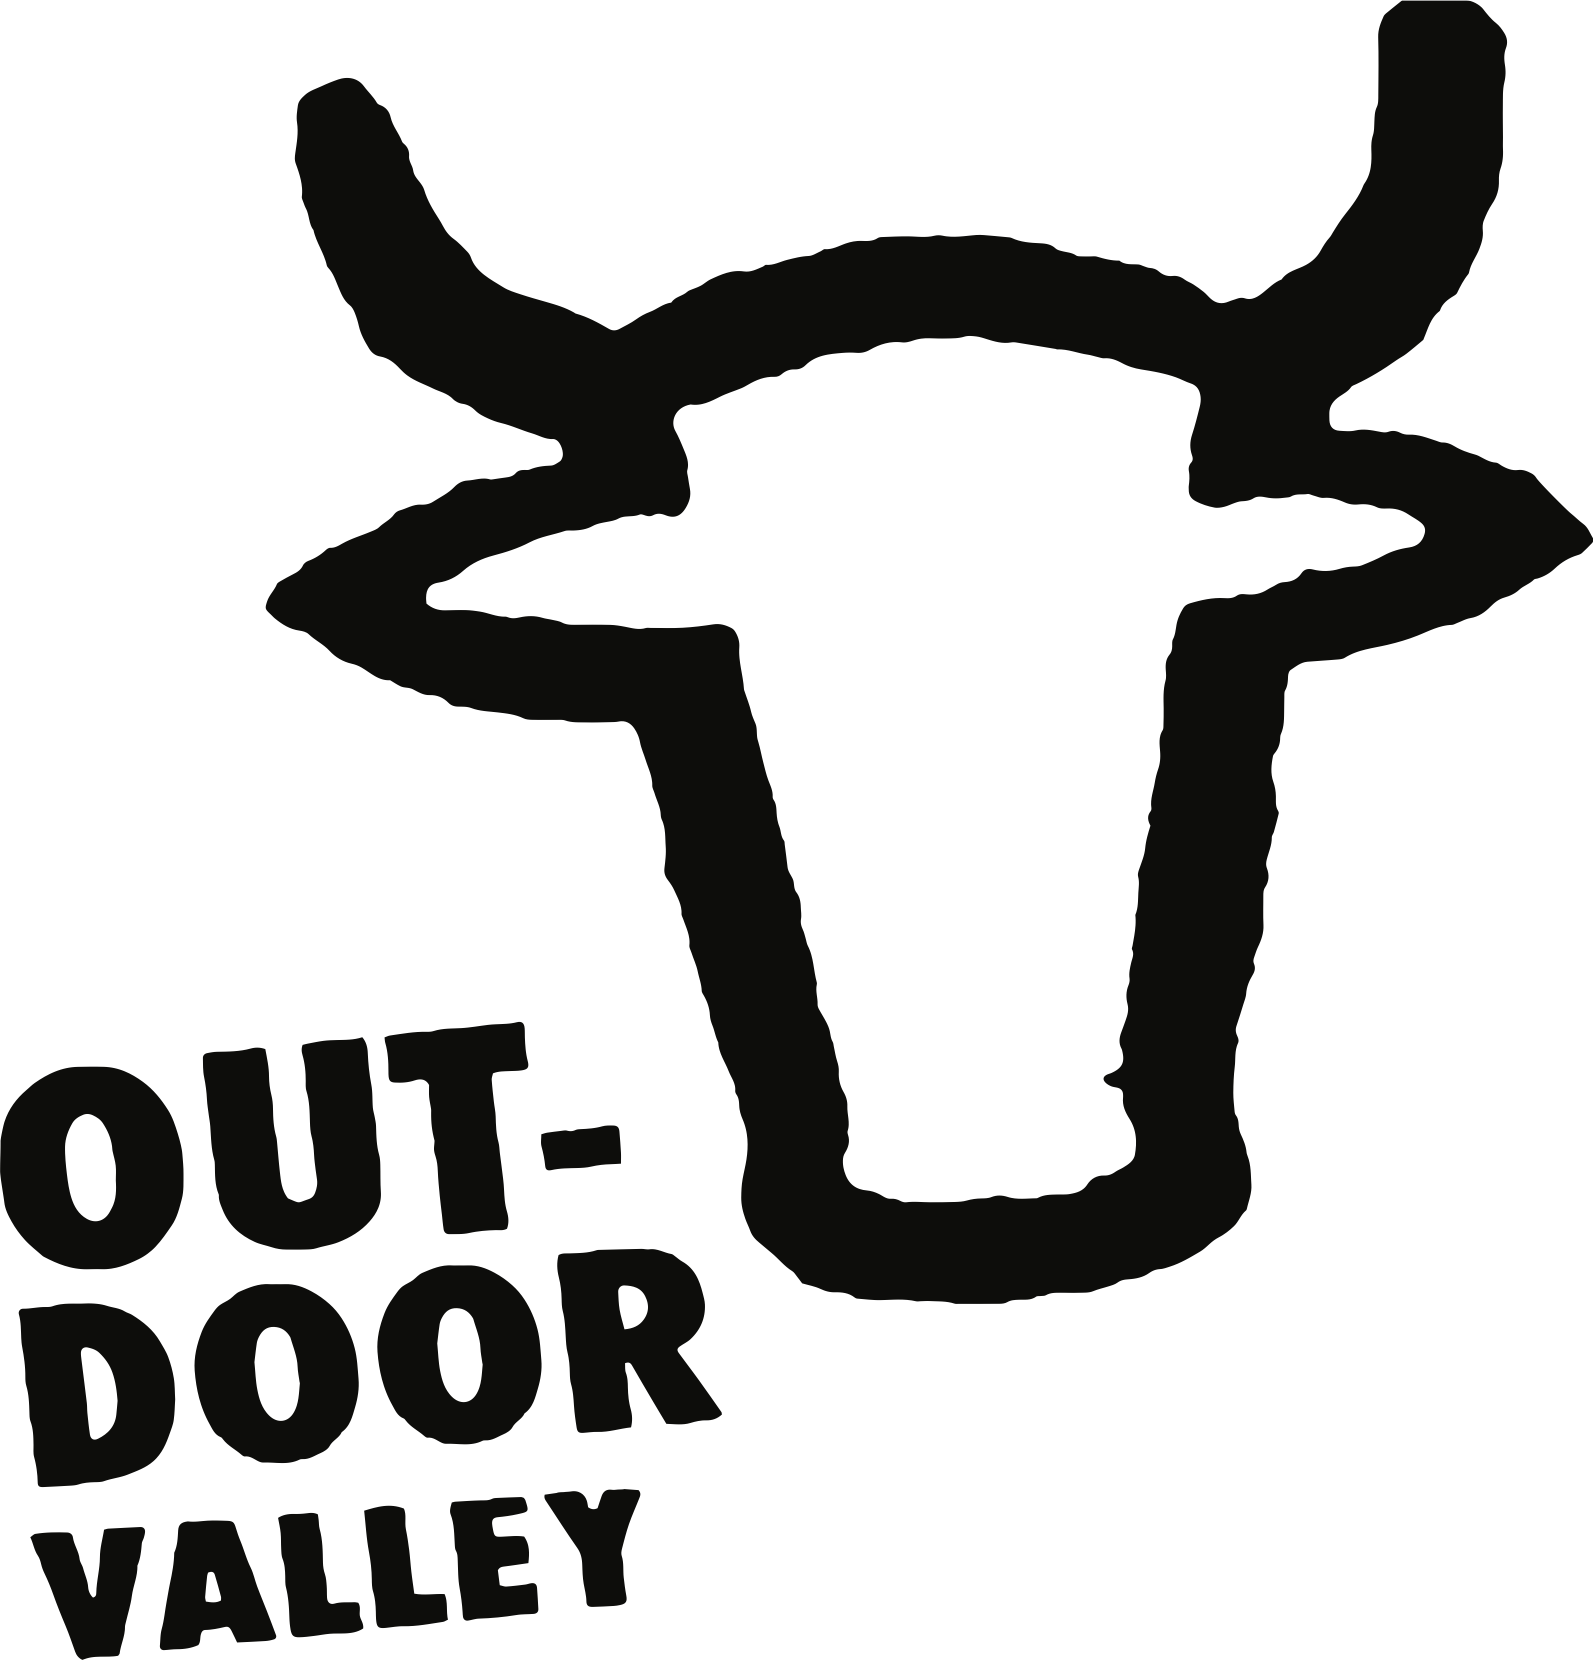 Outdoor Valley (2019)